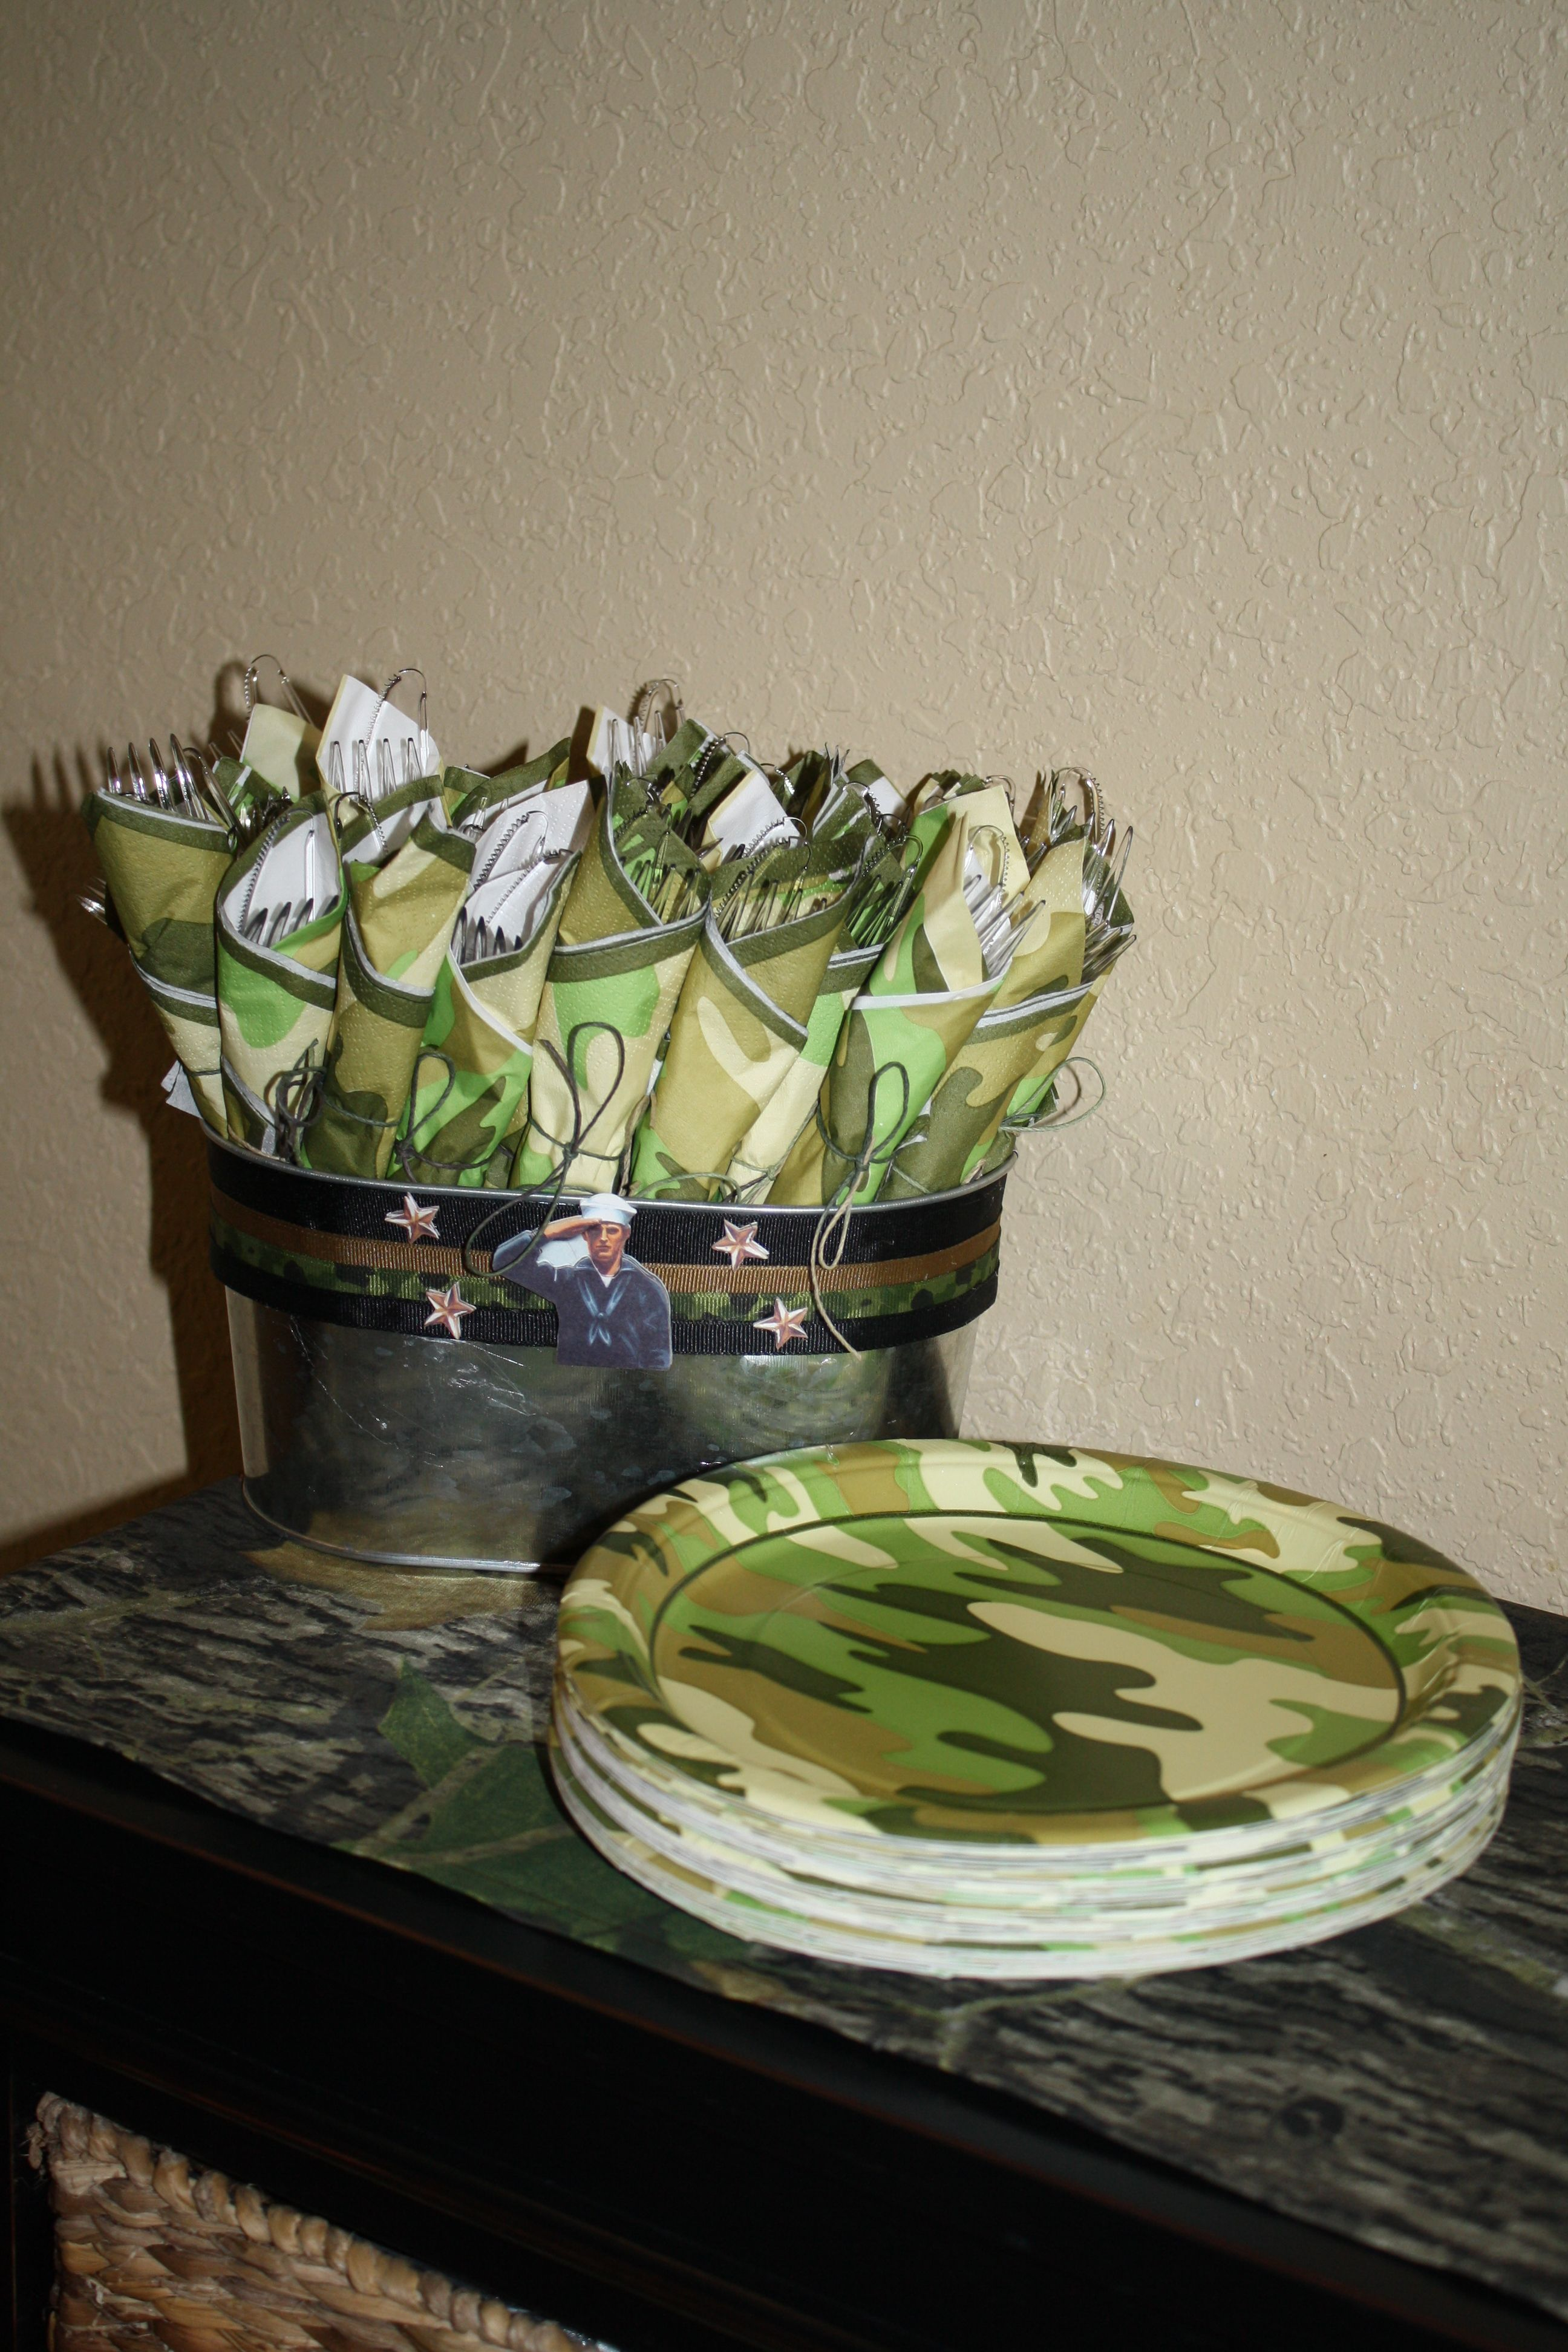 best images about mateo camouflage party 17 best images about mateo camouflage party camouflage party camouflage cake and cupboard online